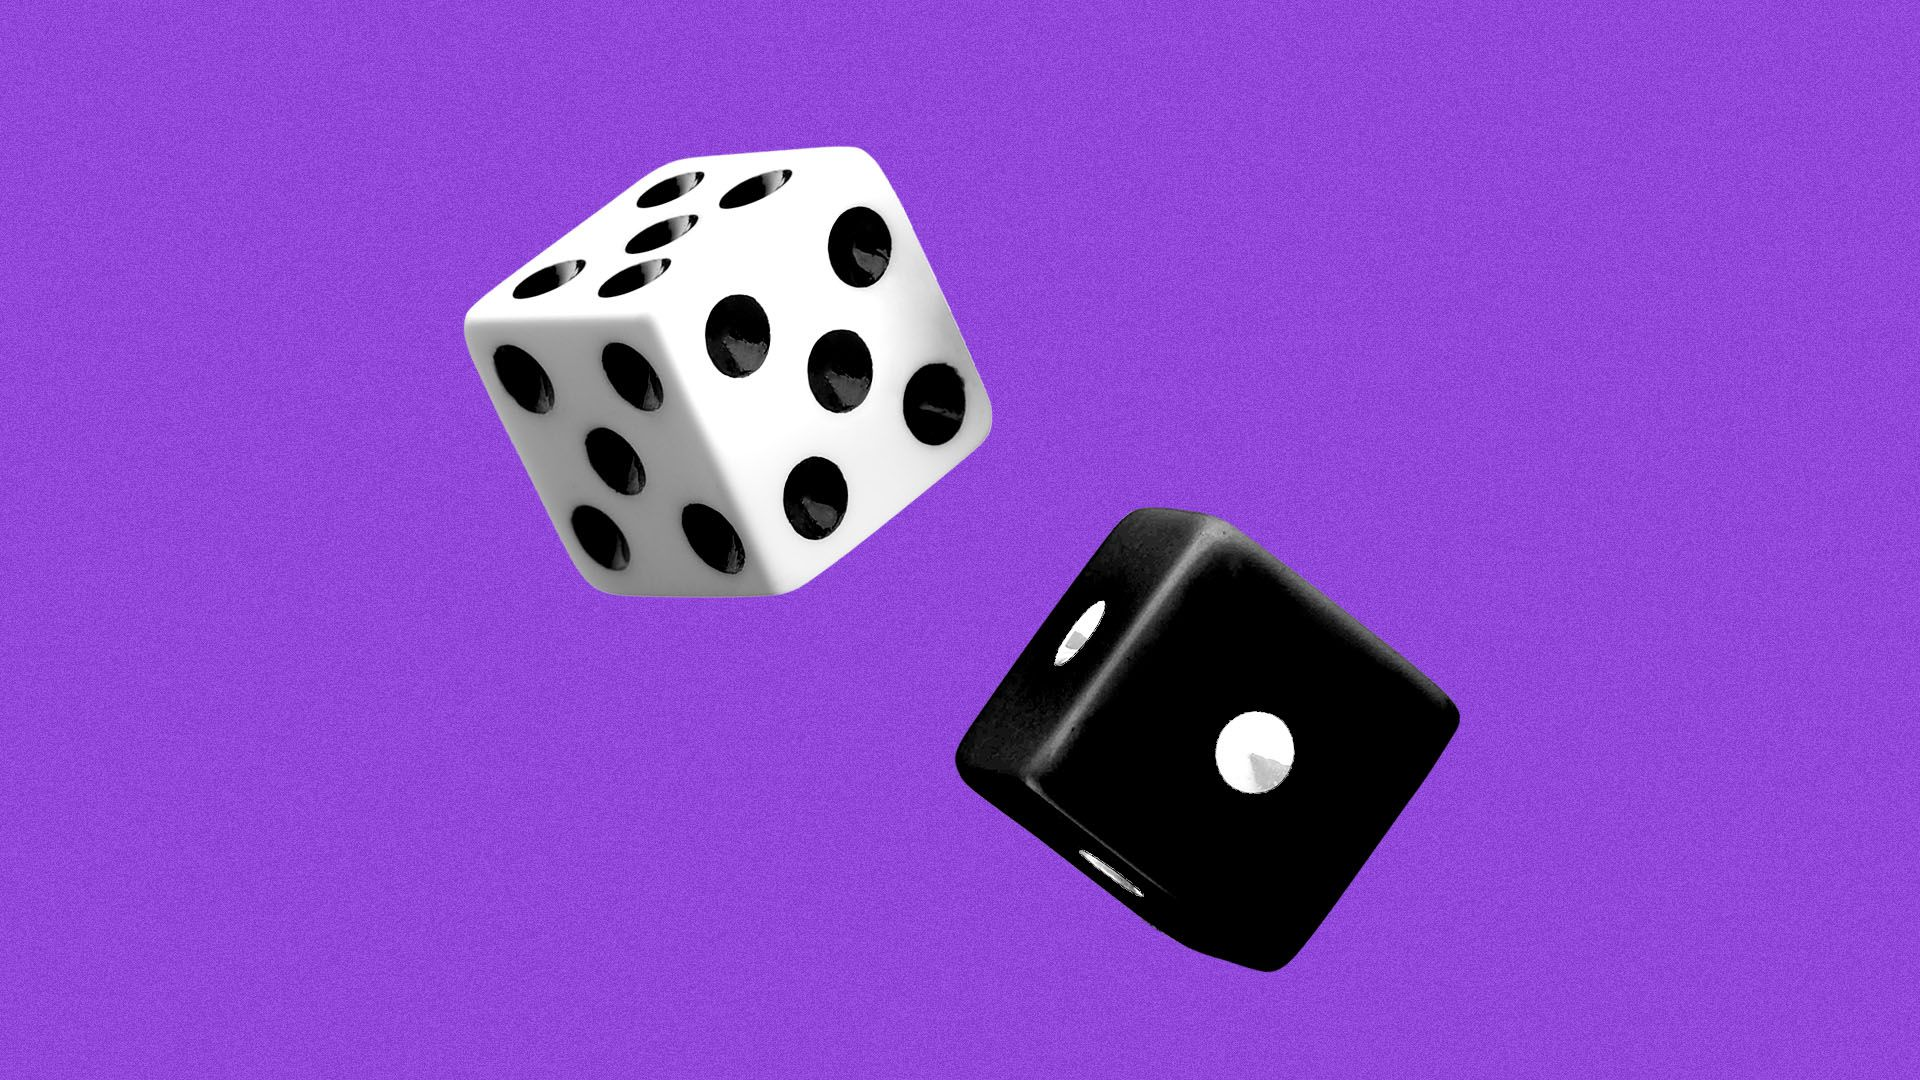 Illustration of a white dice with five black pips on all sides, contrasted with a black dice with a single white pip on all sides